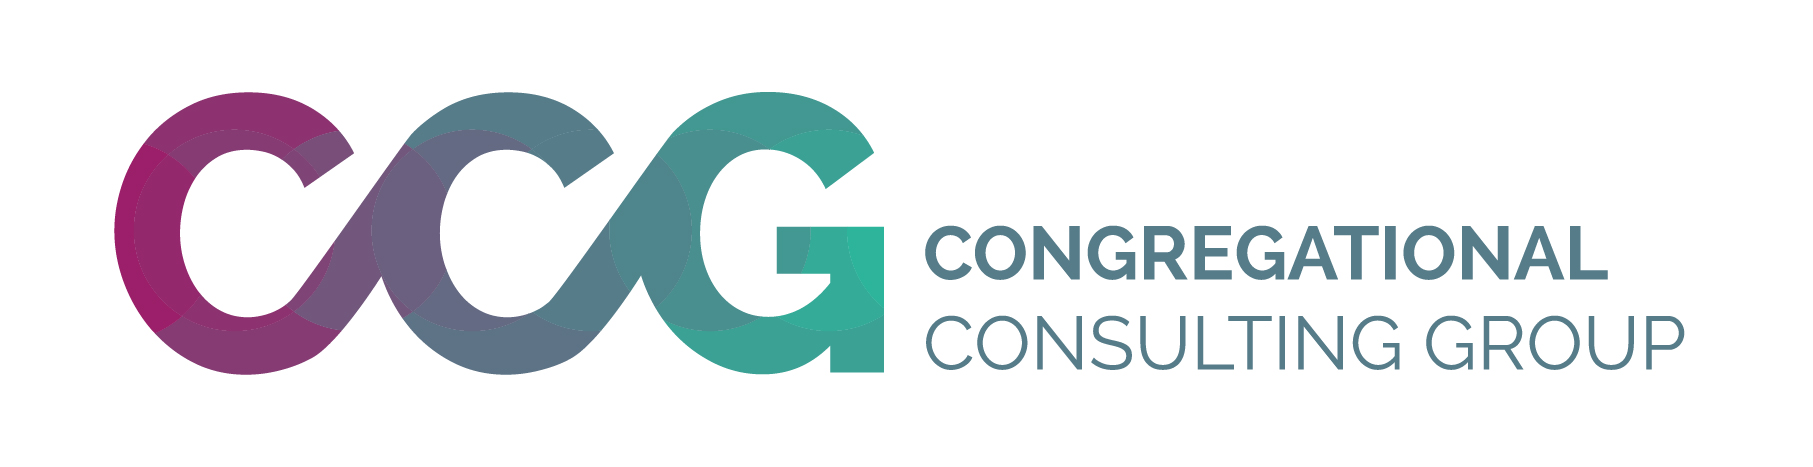 Congregational Consulting Group